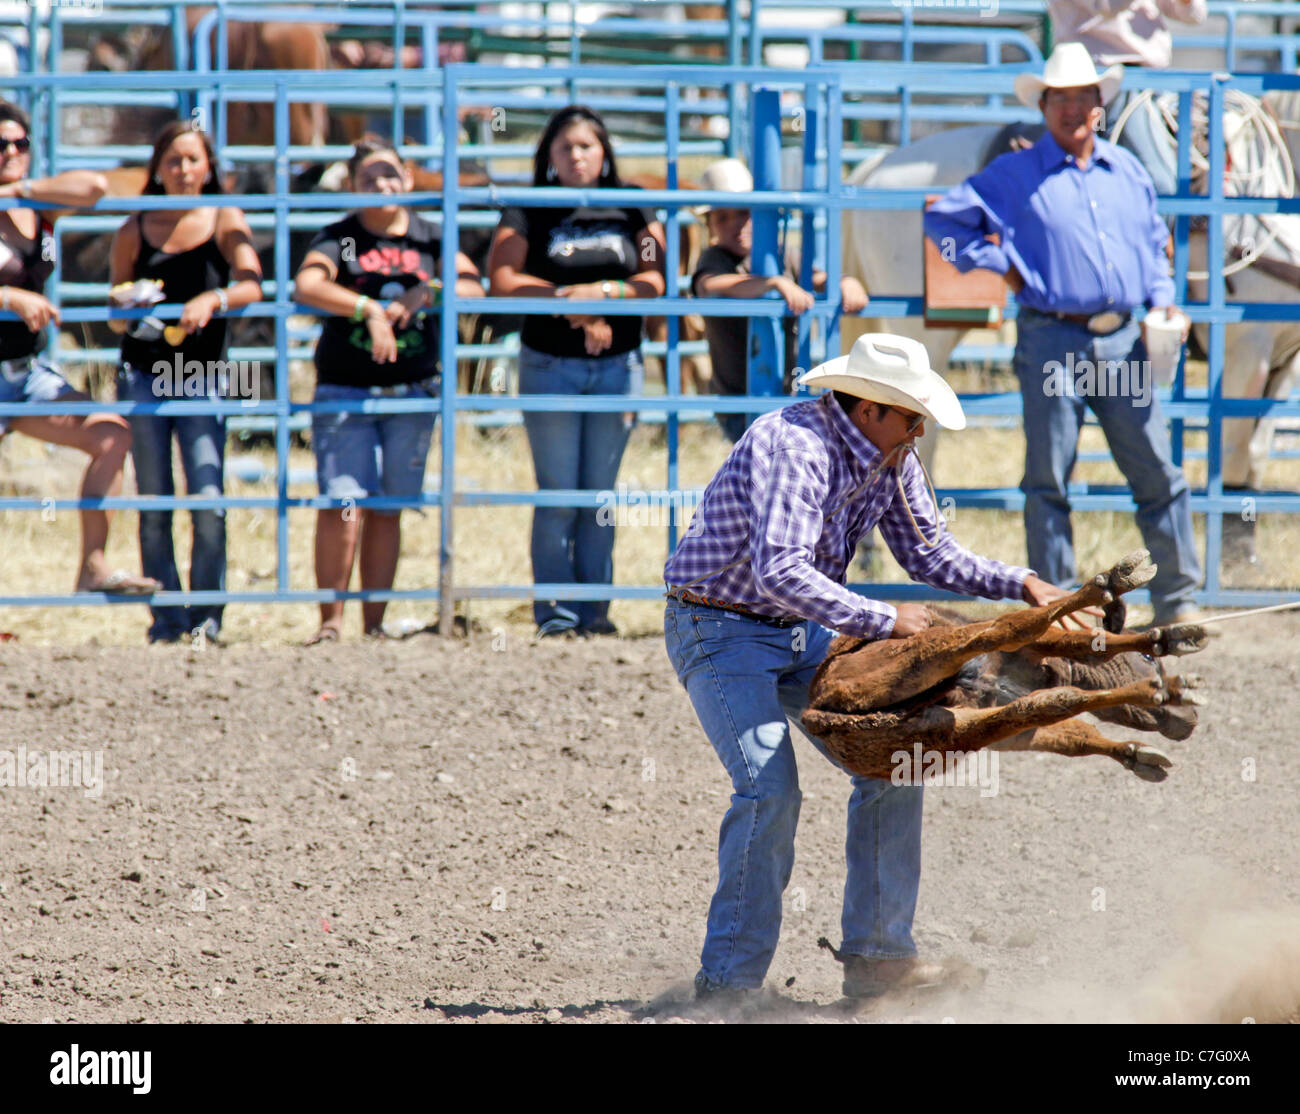 Competitor during the calf tie-down event of the rodeo held on the Fort Hall reservation in Idaho Stock Photo